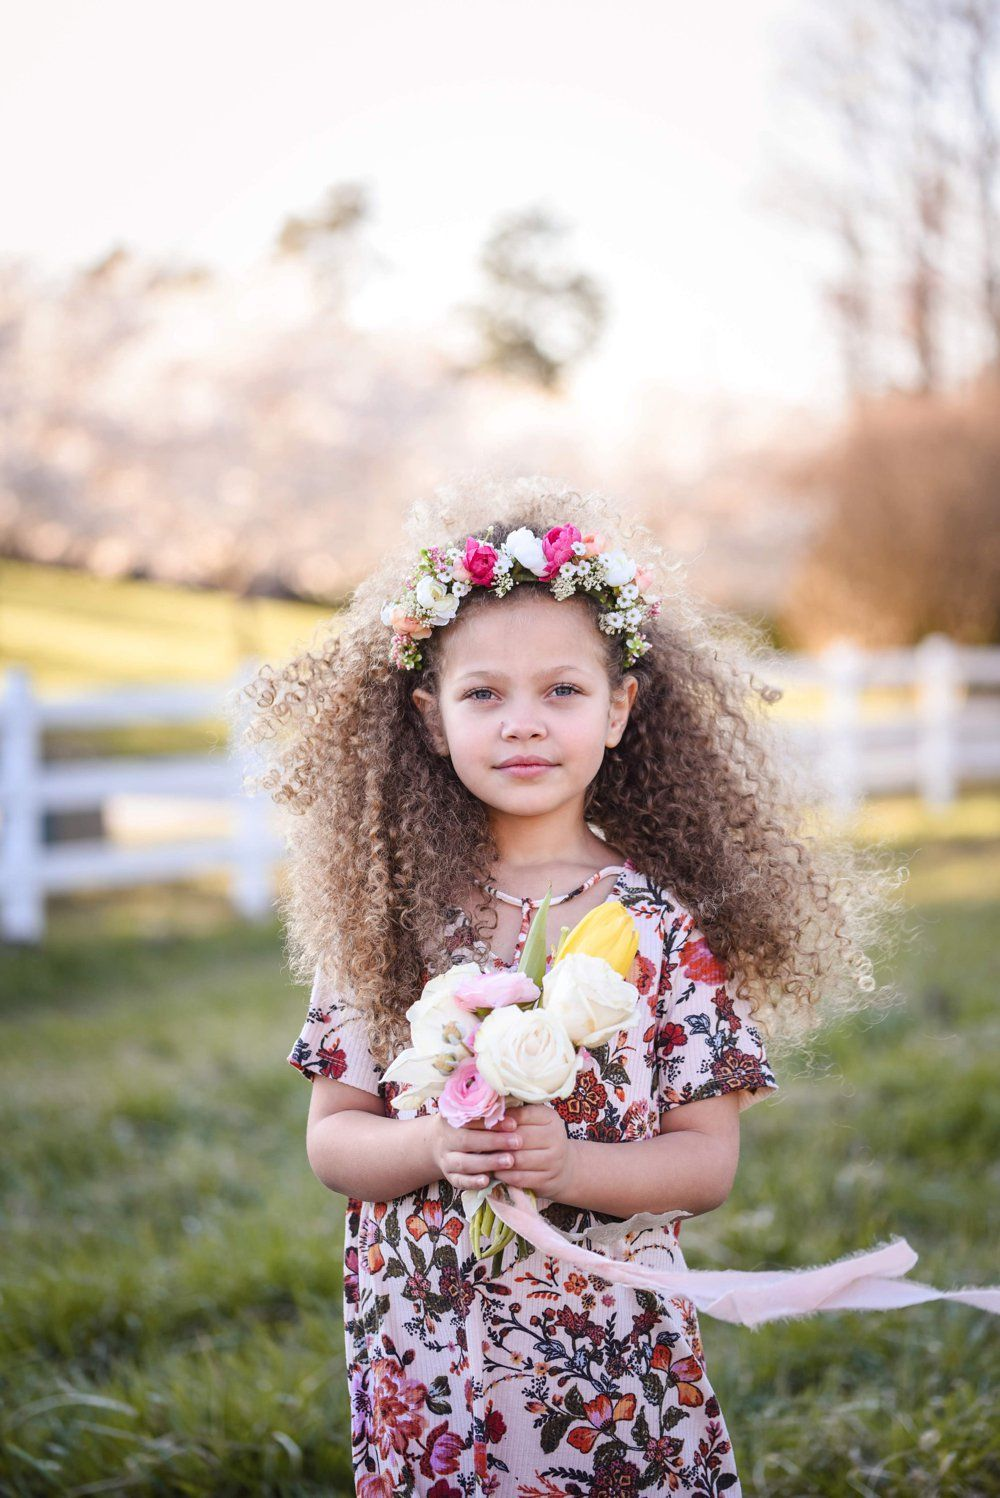 Flower Princesses in an Enchanted Meadow A PRINCESS